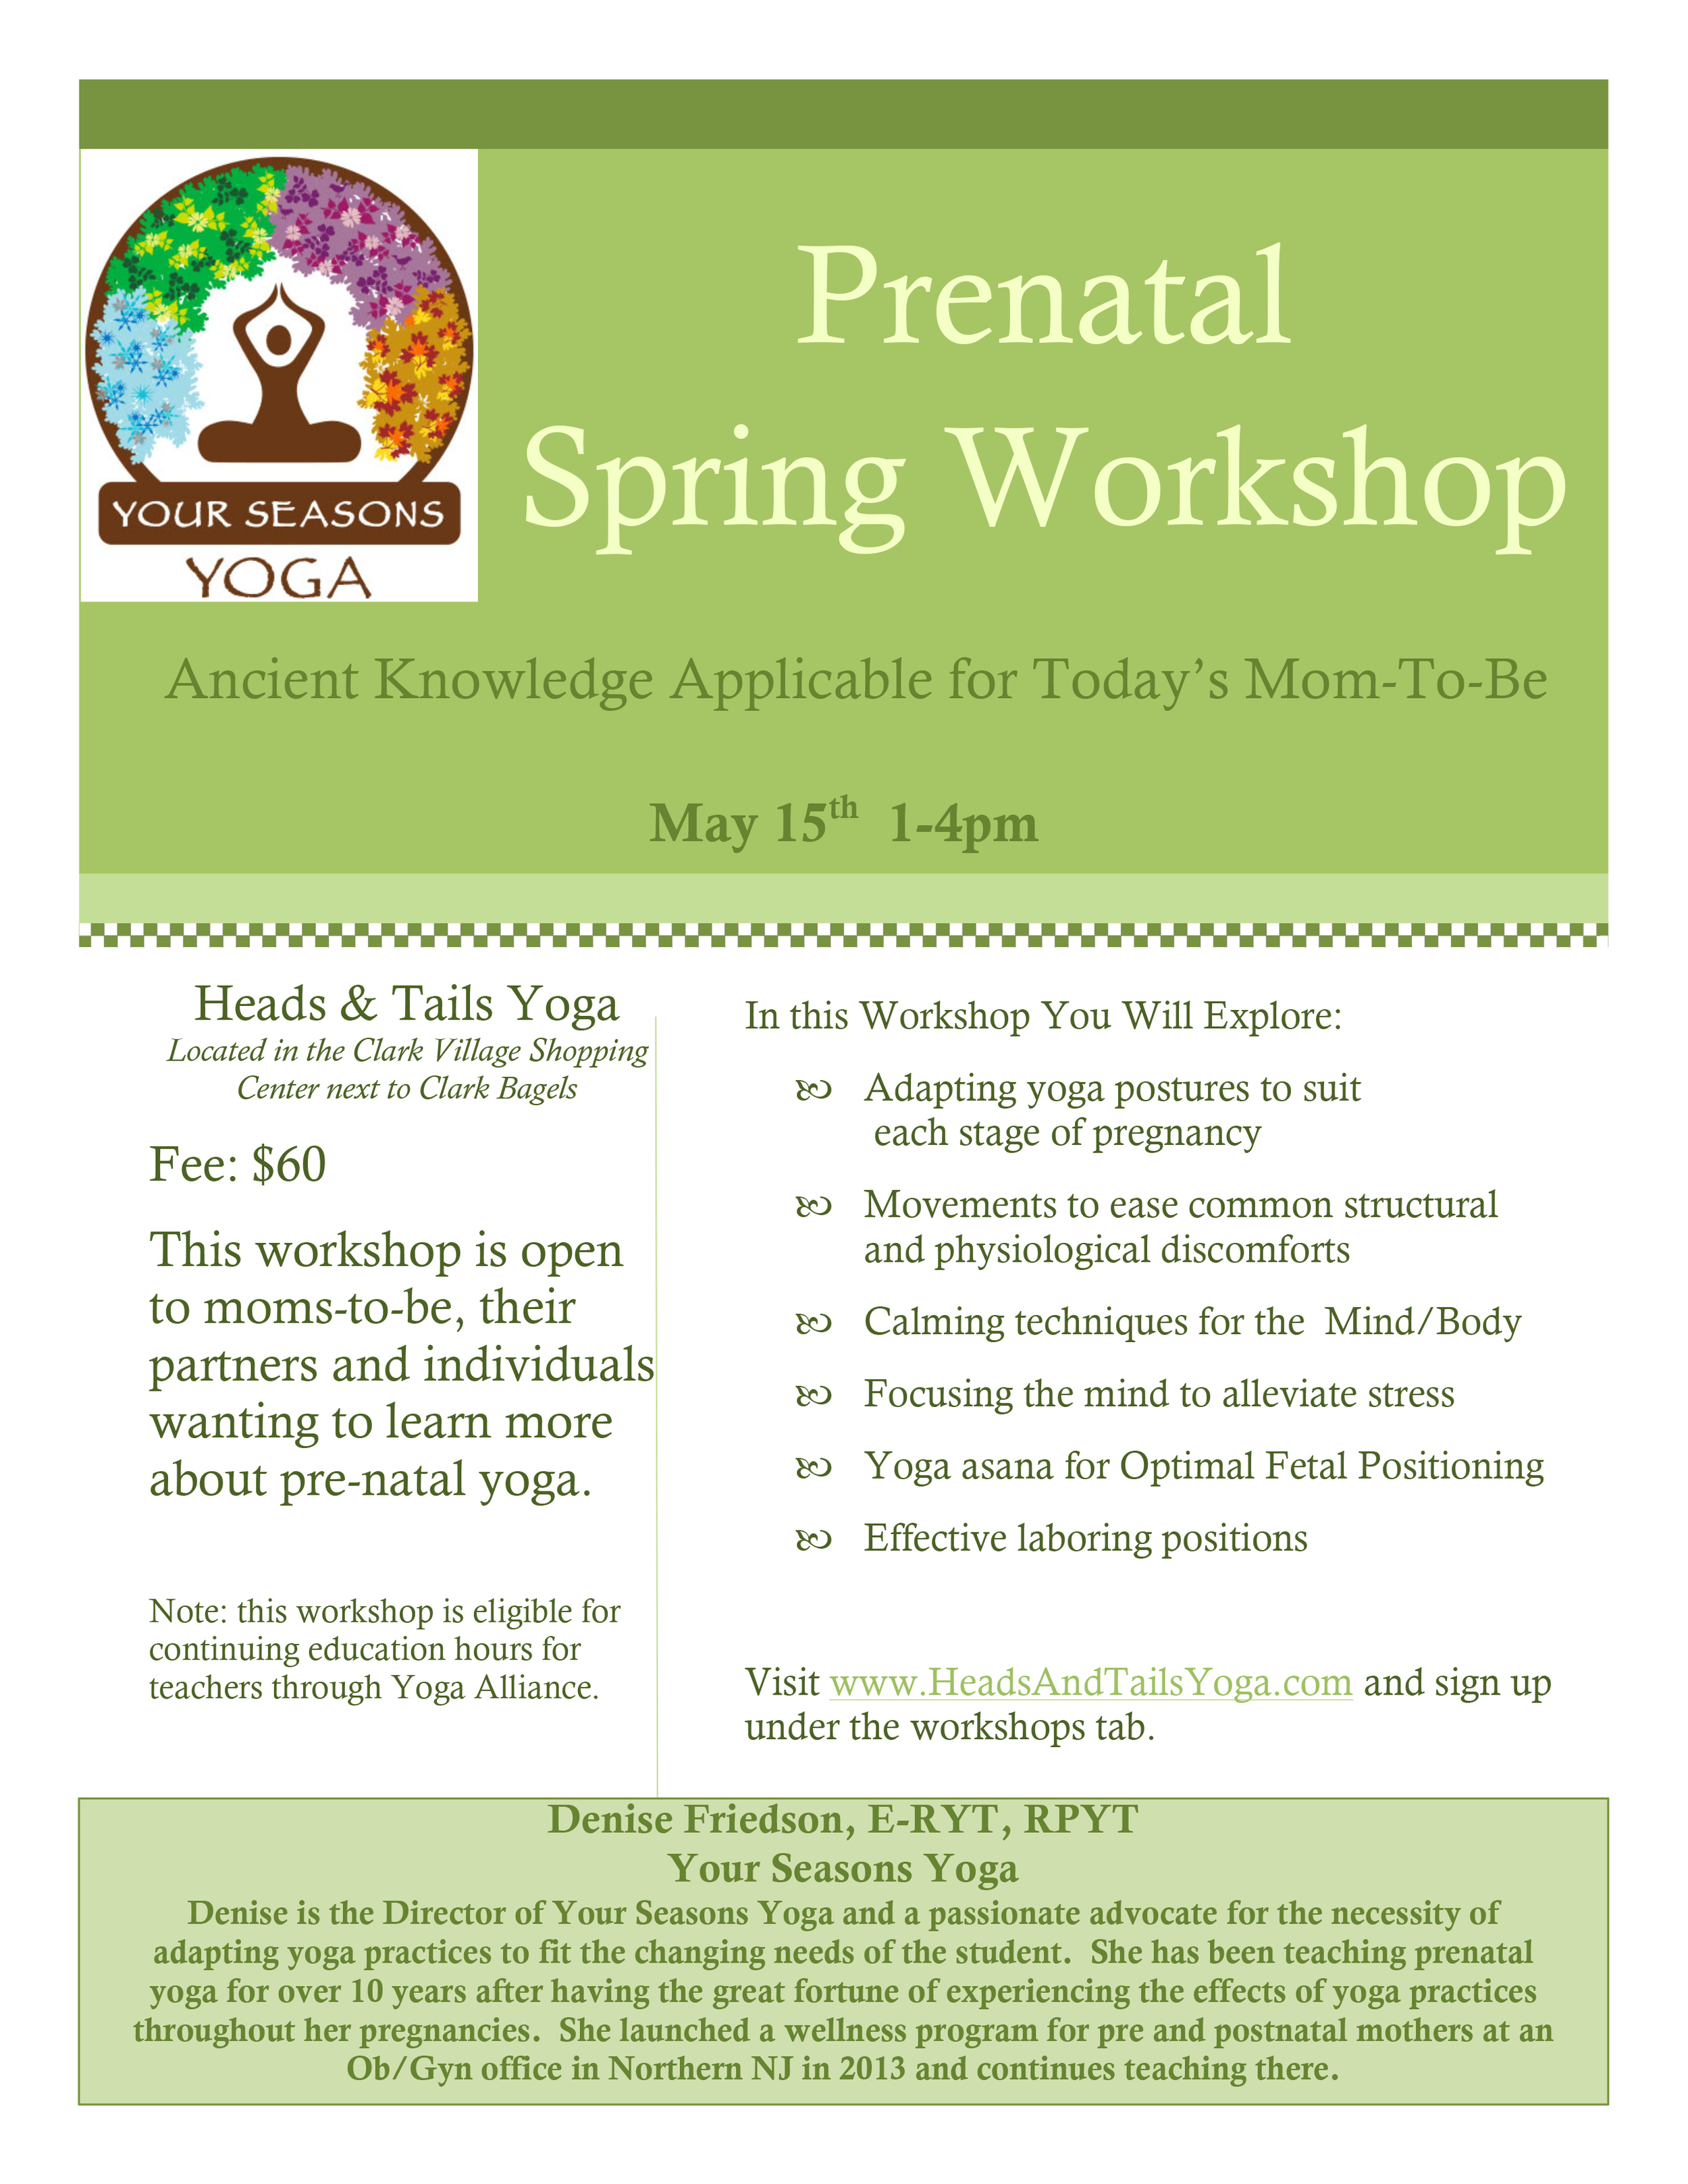 Prenatal Spring Workshop Flyer